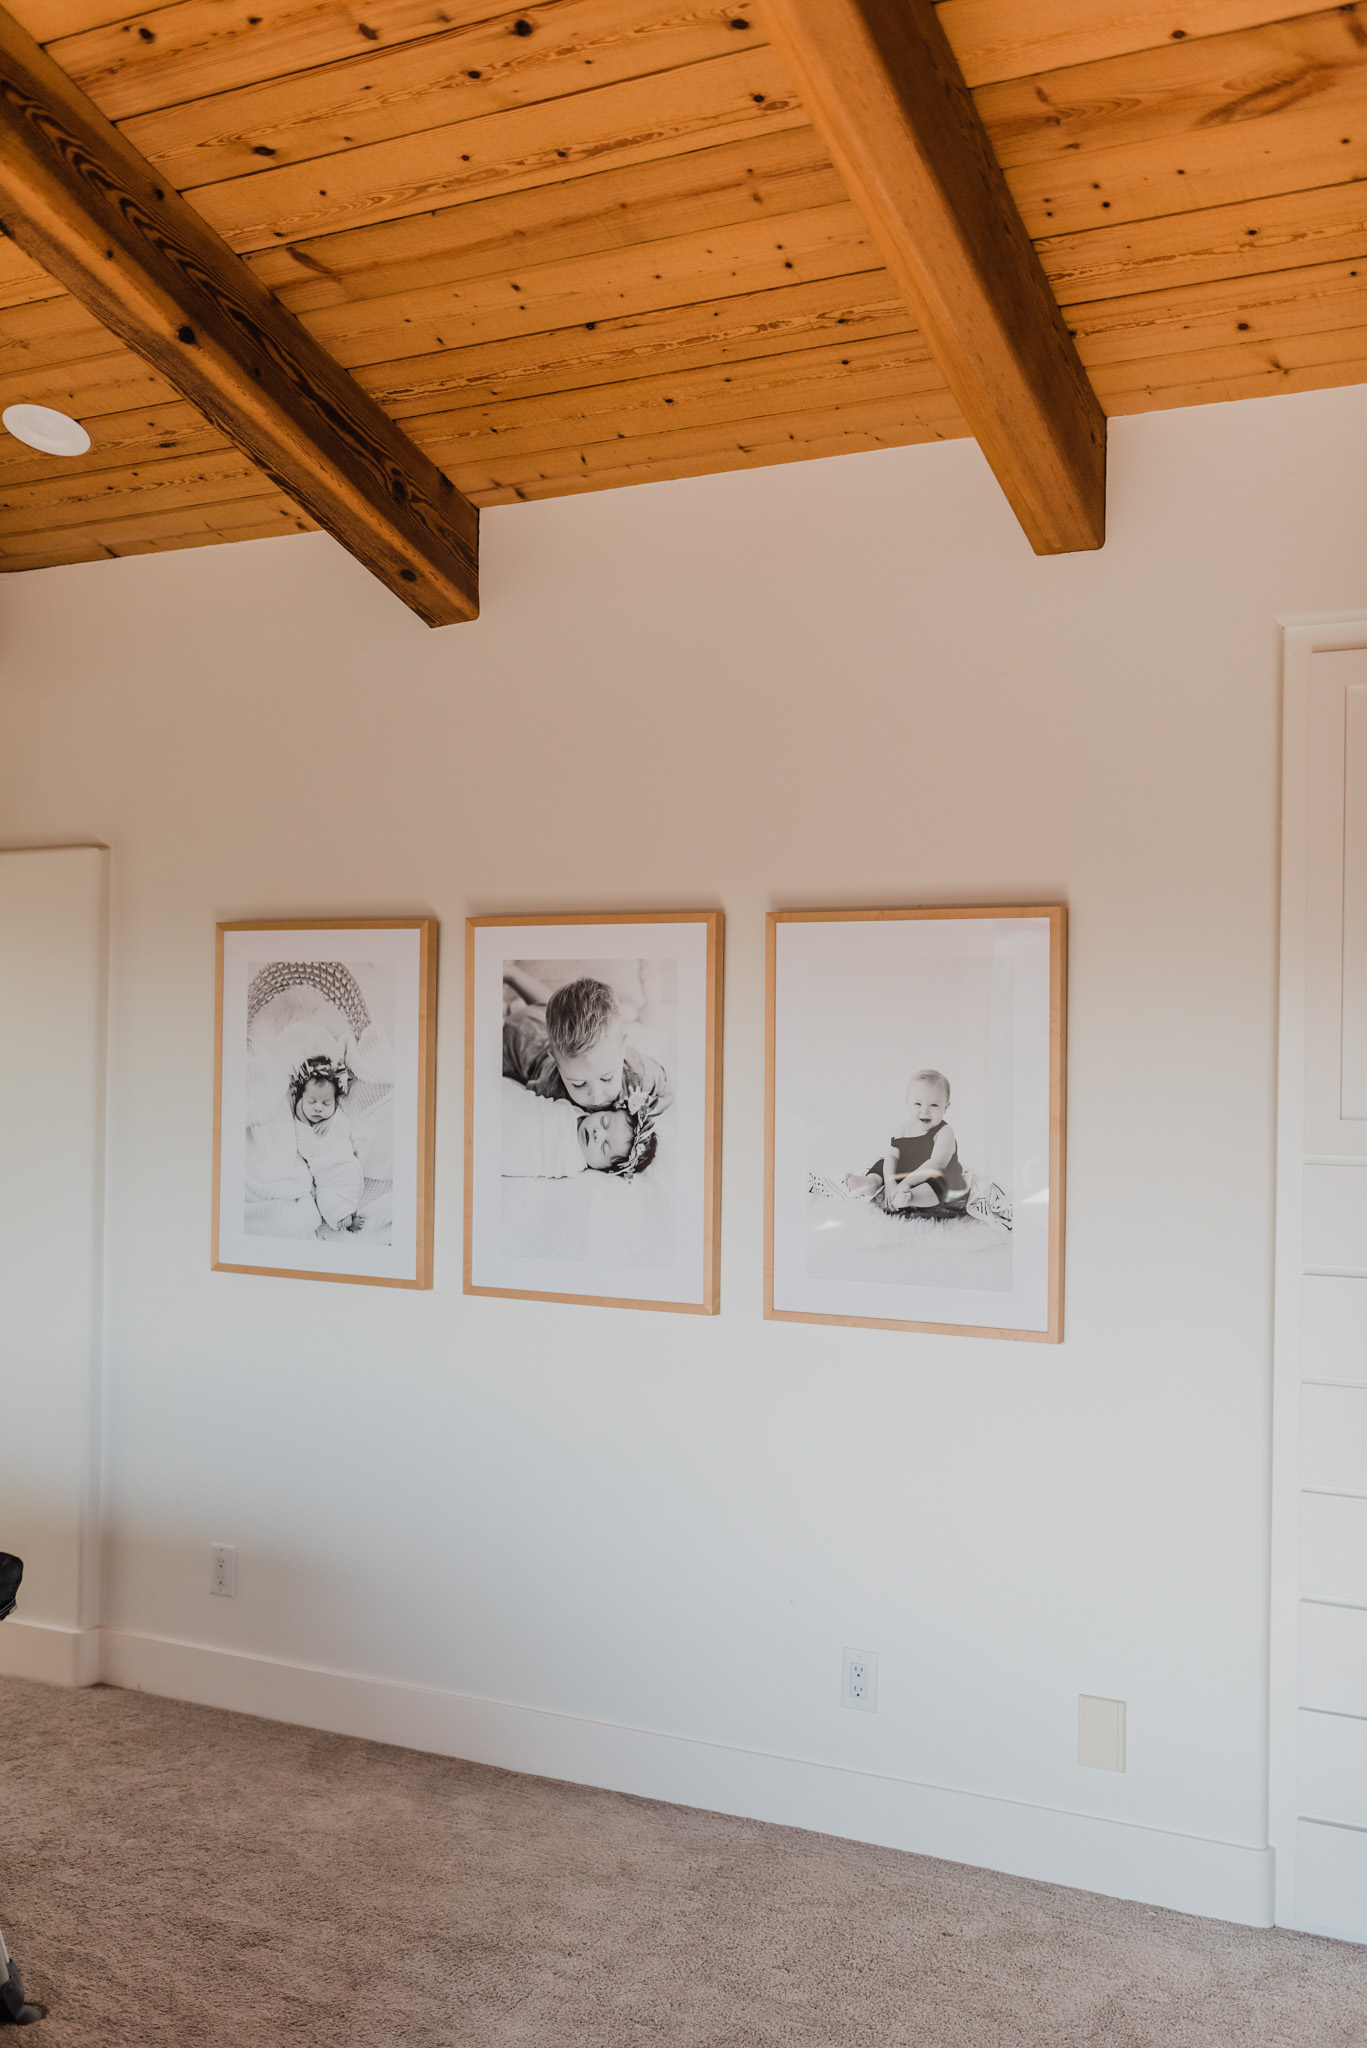 Frambridge Frames by popular San Diego life and style blog, Navy Grace: image of a wall in a home with multiple natural wood Framebridge frames hanging on it.